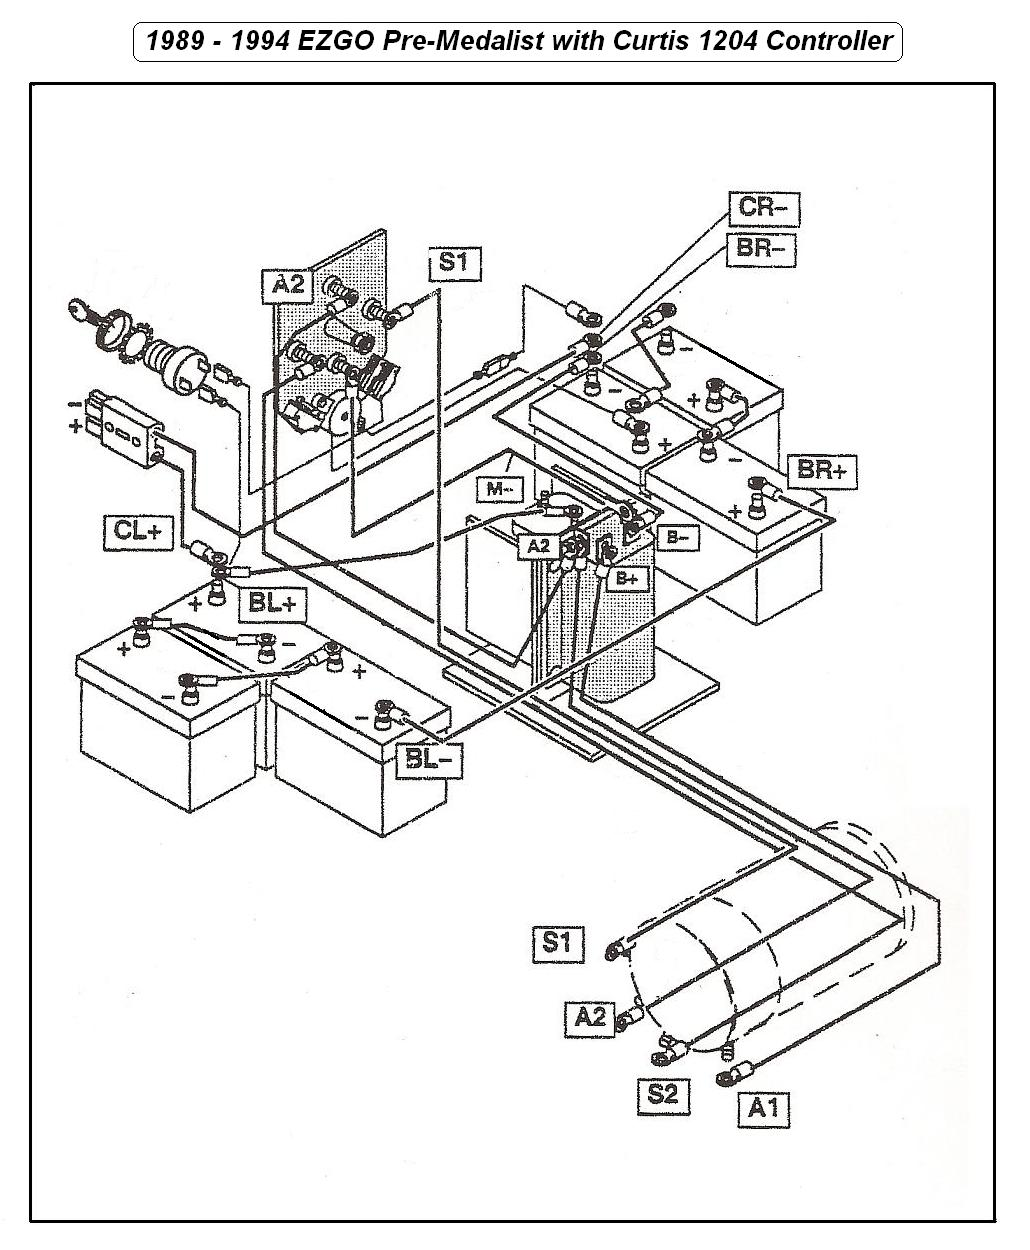 1994 36v club car wiring diagram 1966 mustang under dash battery for golf cart 36 volt